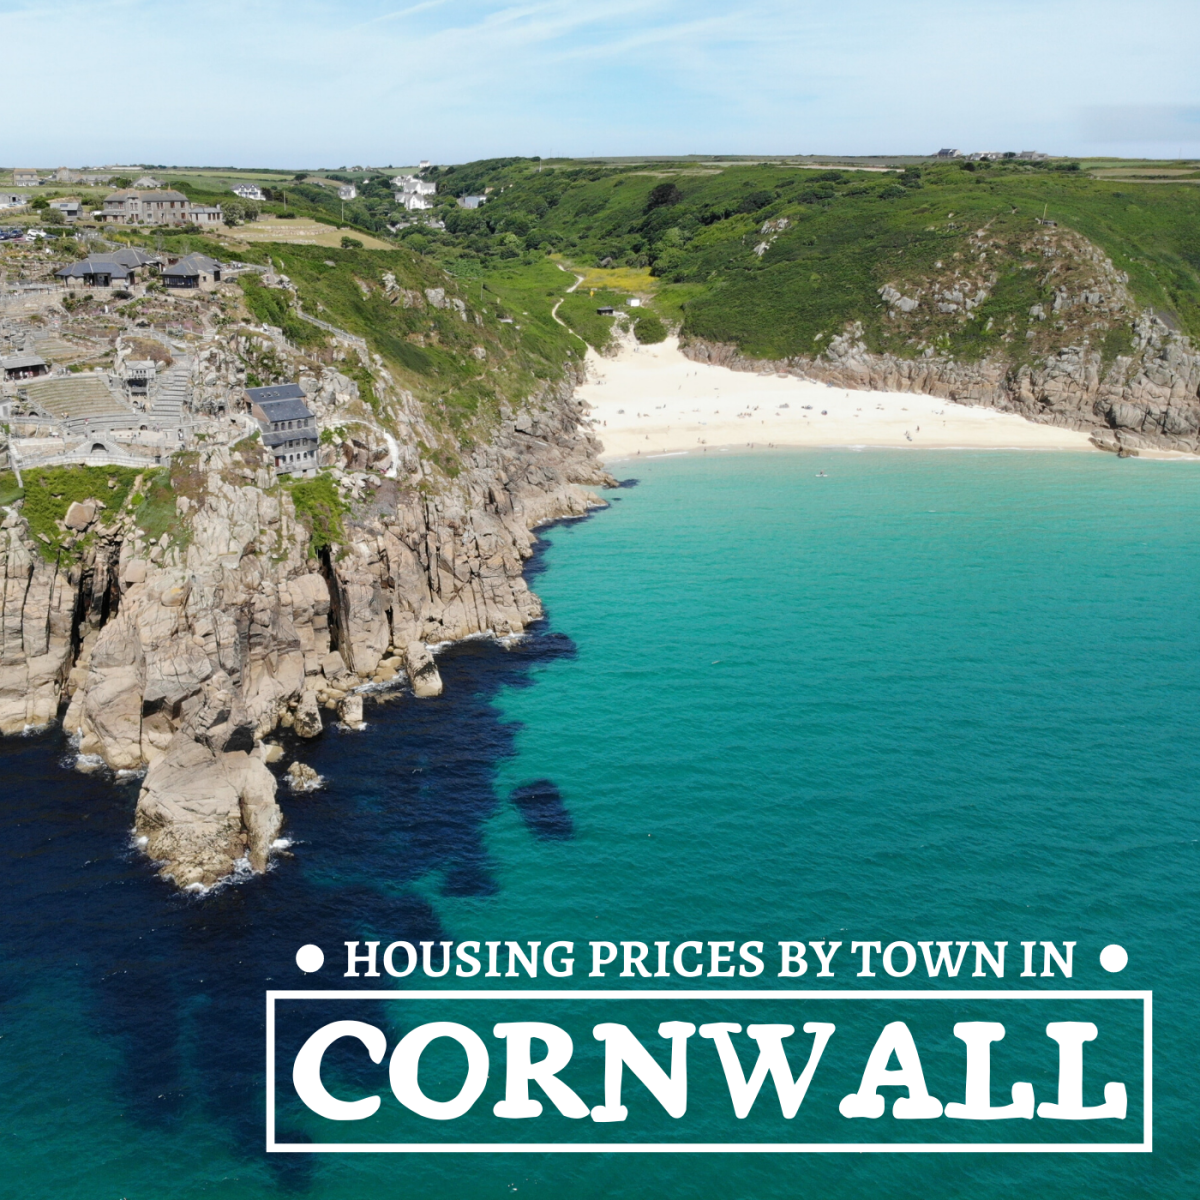 The quaint villages and picturesque towns that dot the rolling hills and seaside cliffs of Cornwall are enticing to many prospective home buyers.